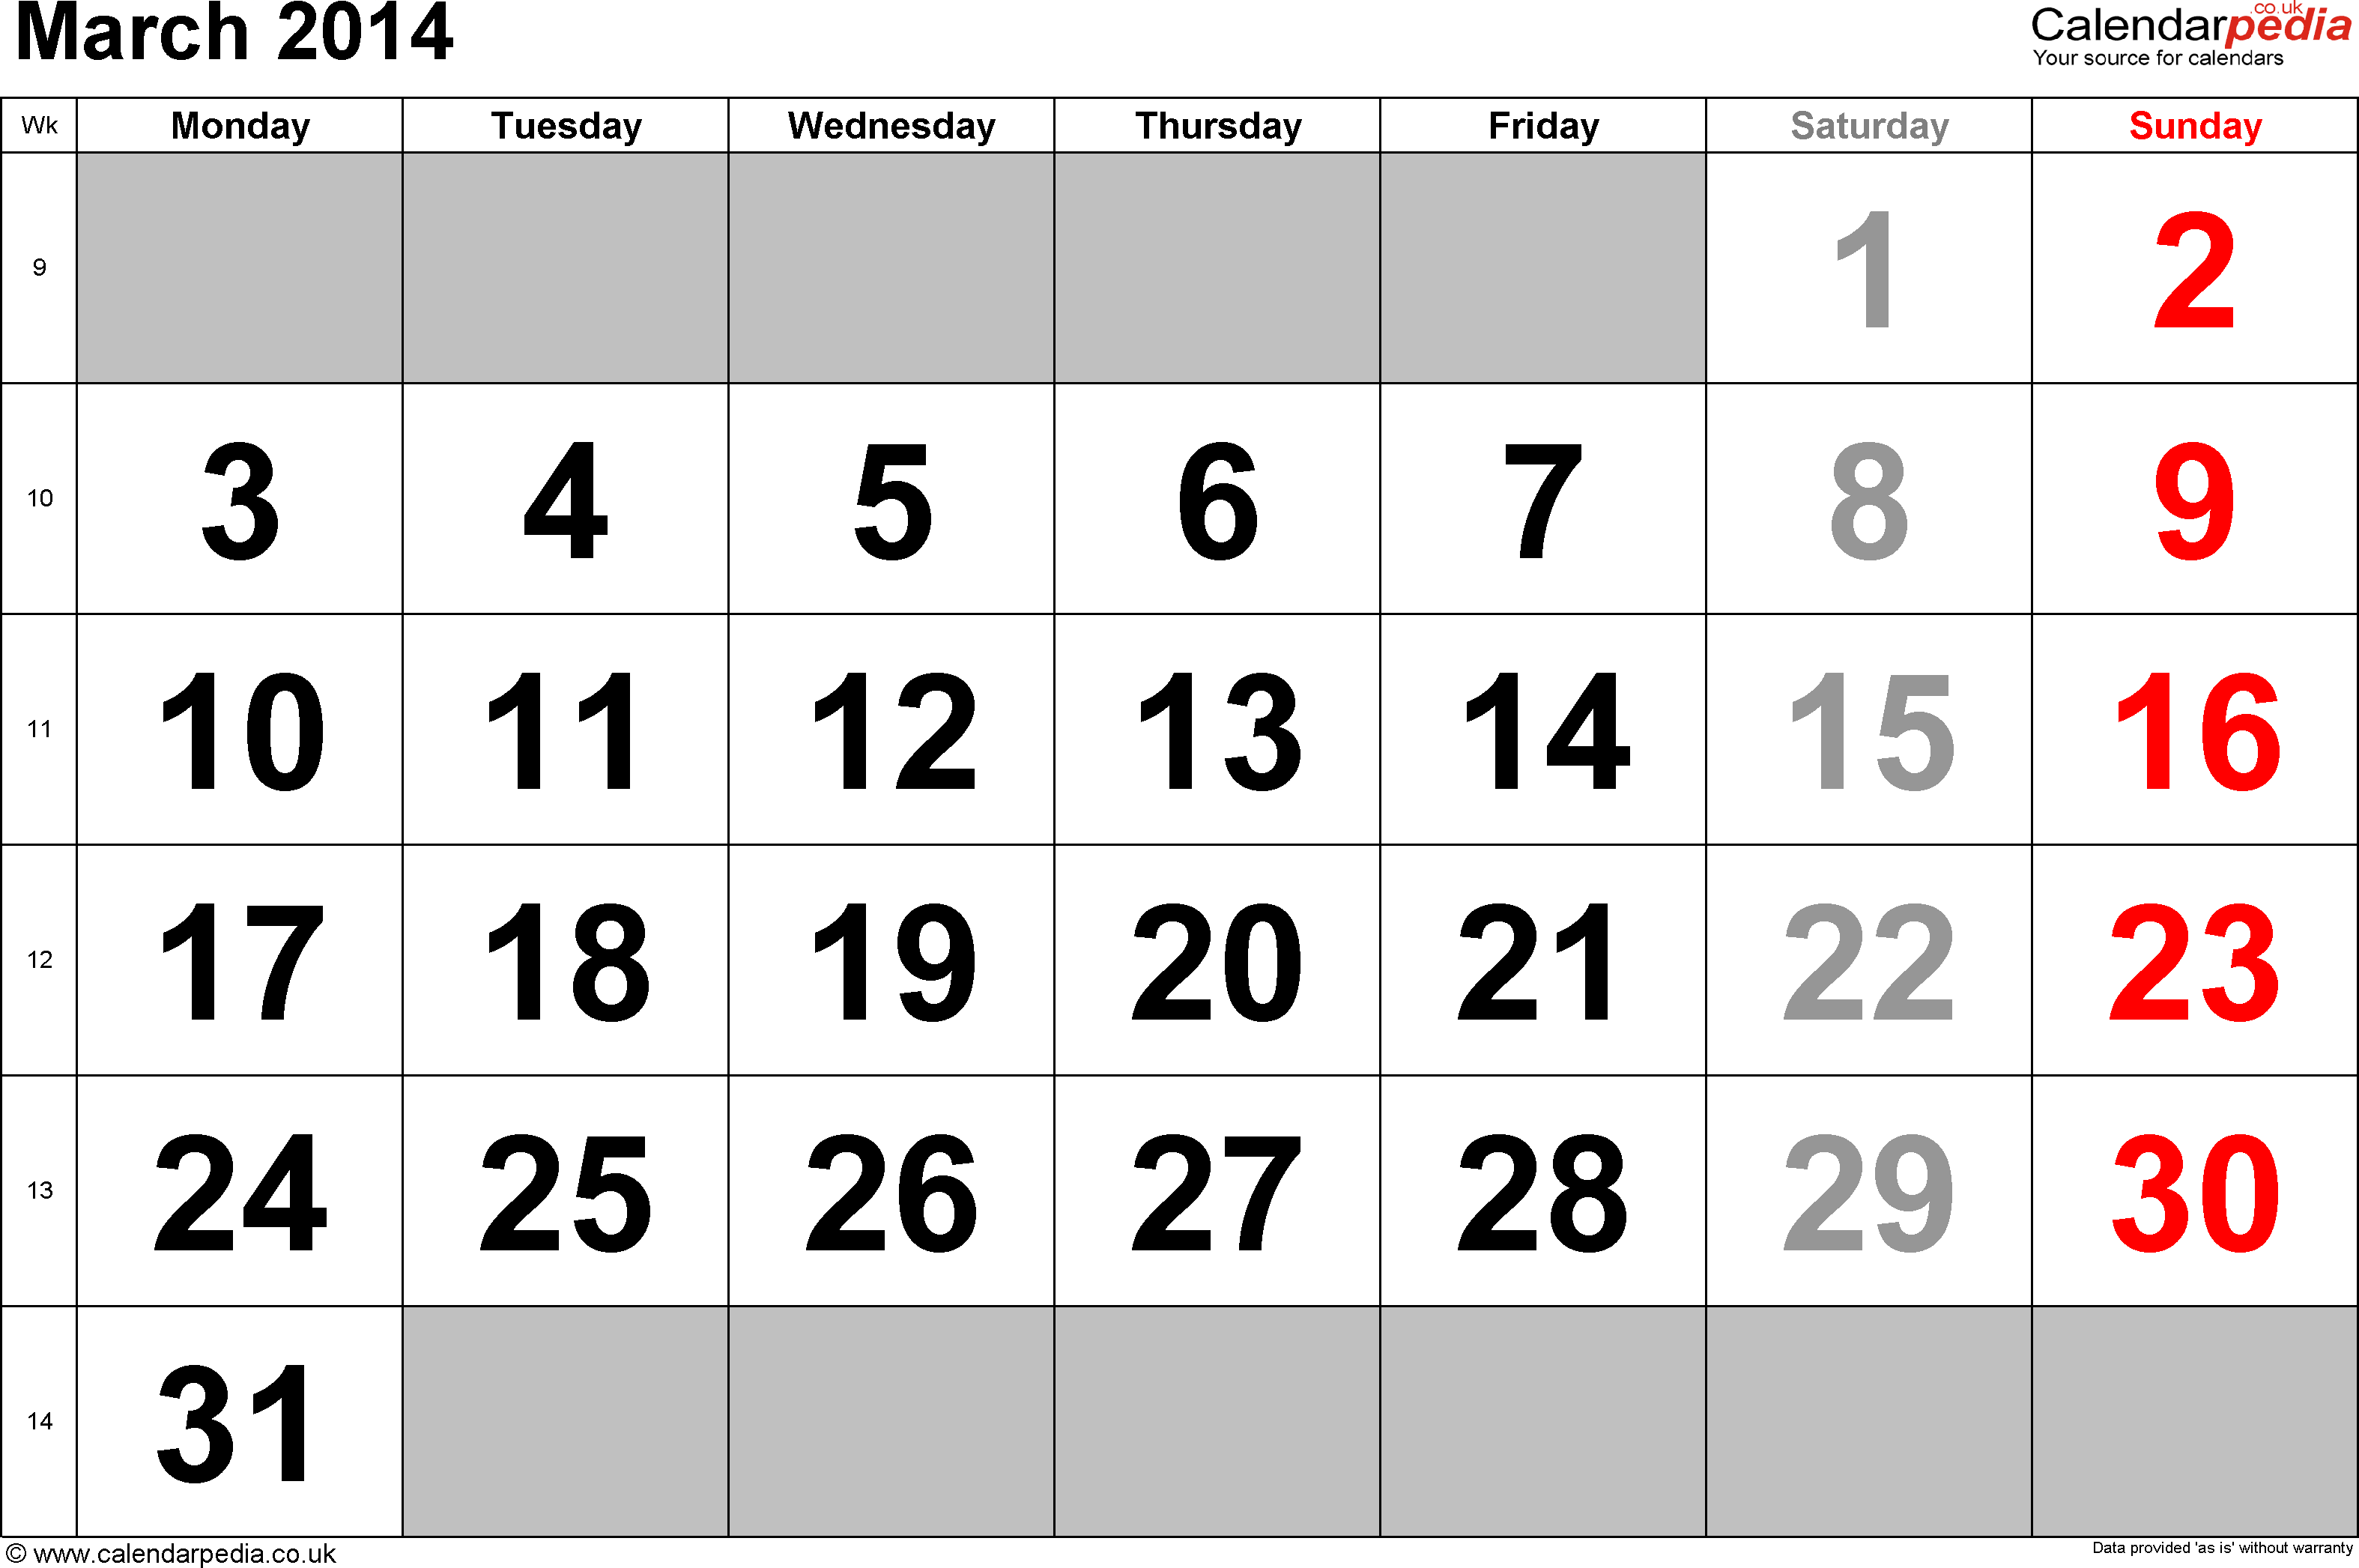 Calendar March 2014, landscape orientation, large numerals, 1 page, with UK bank holidays and week numbers